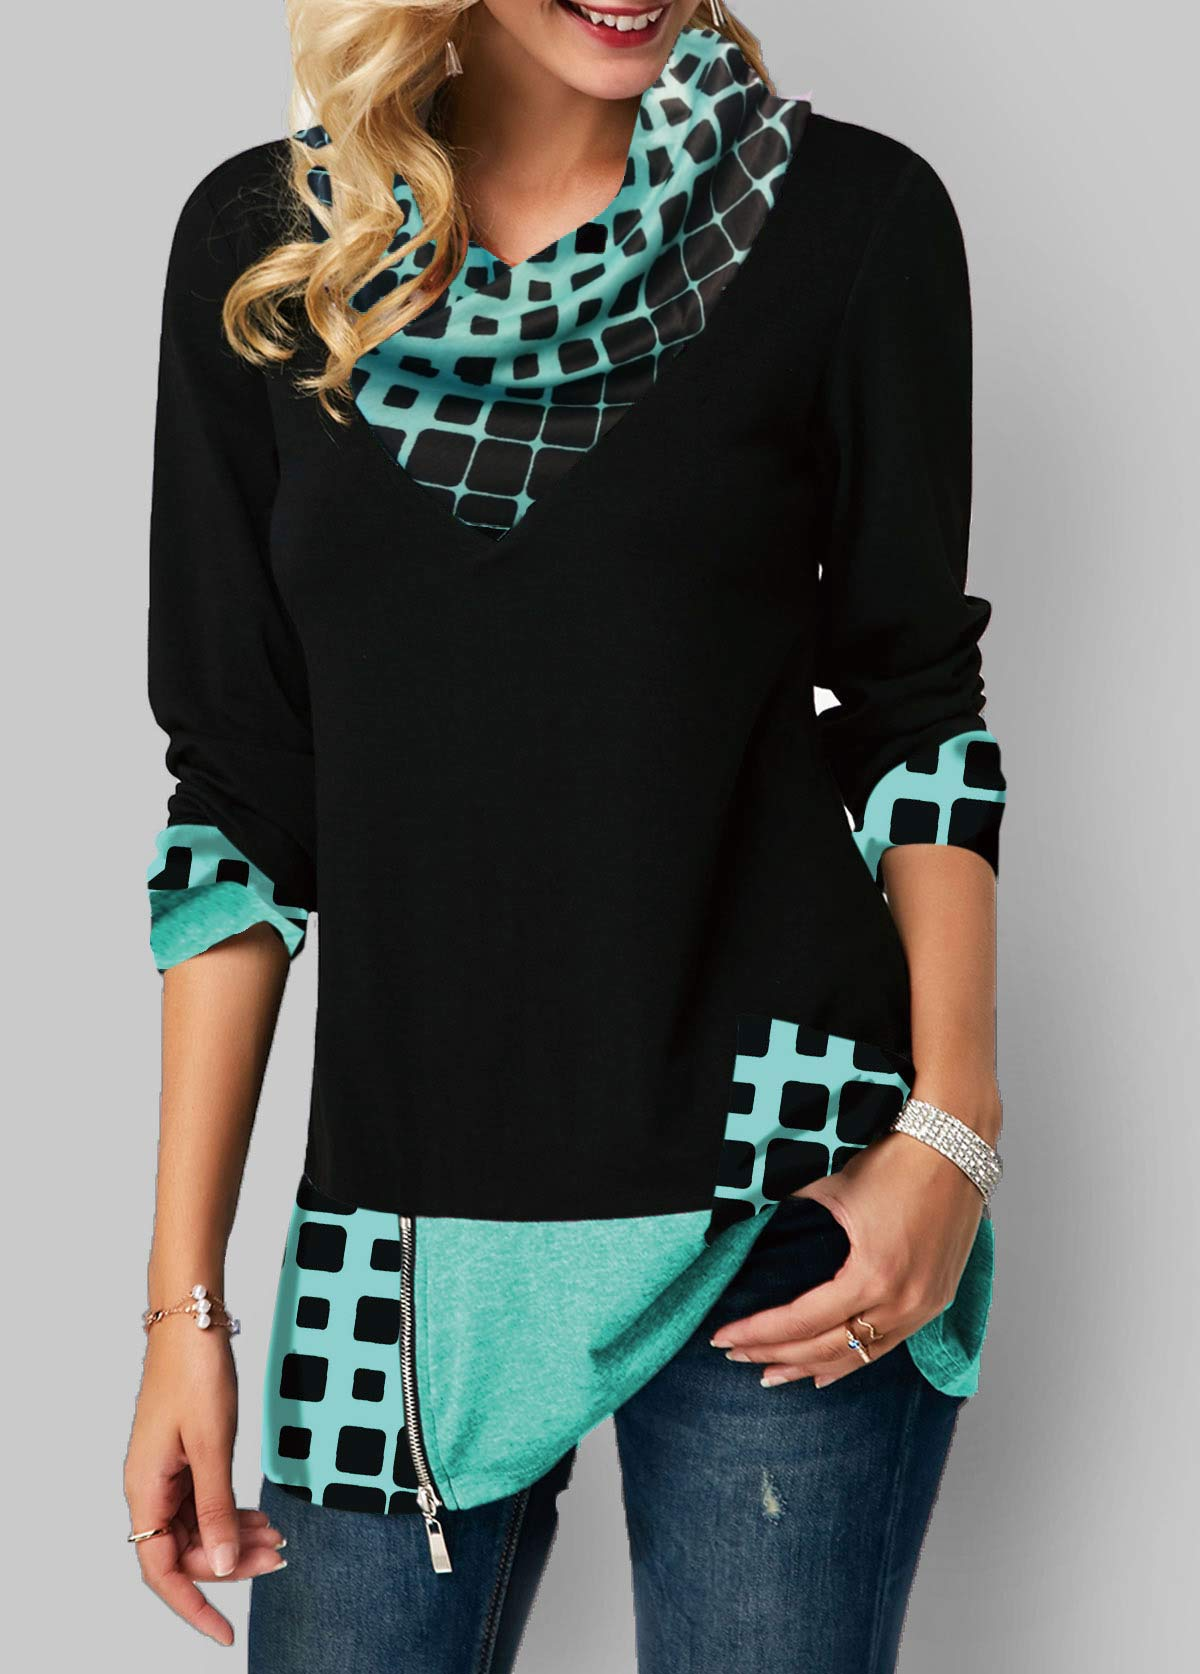 Long Sleeve Geometric Print Zipper Detail T Shirt